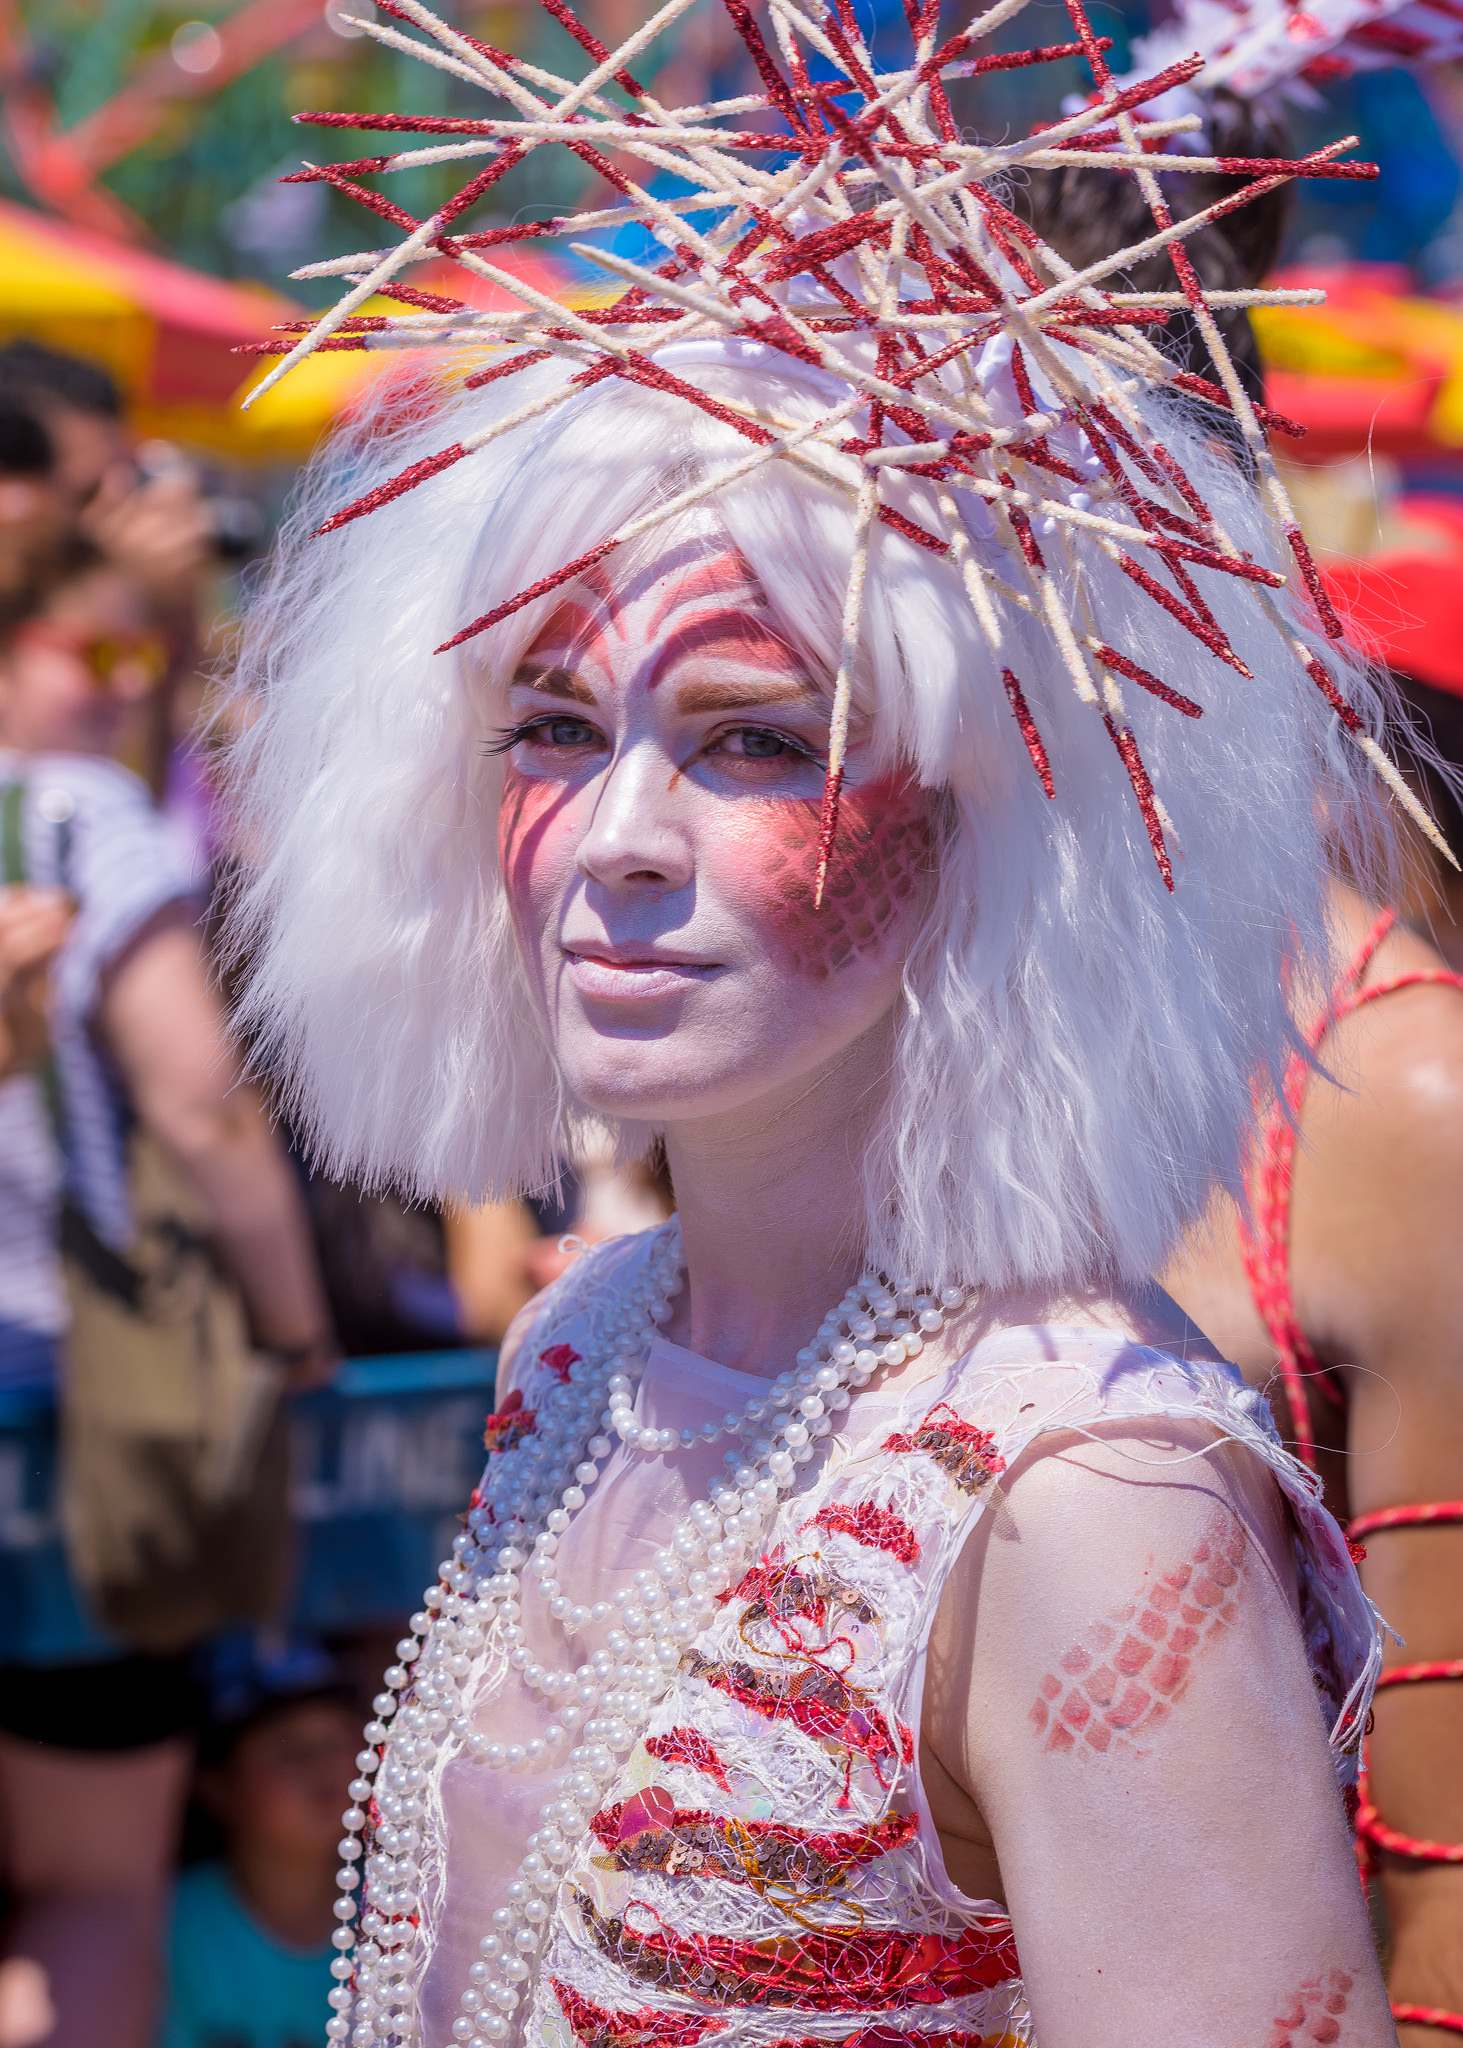 mermaid parade9 2016 Coney Island Mermaid Parade in NYC